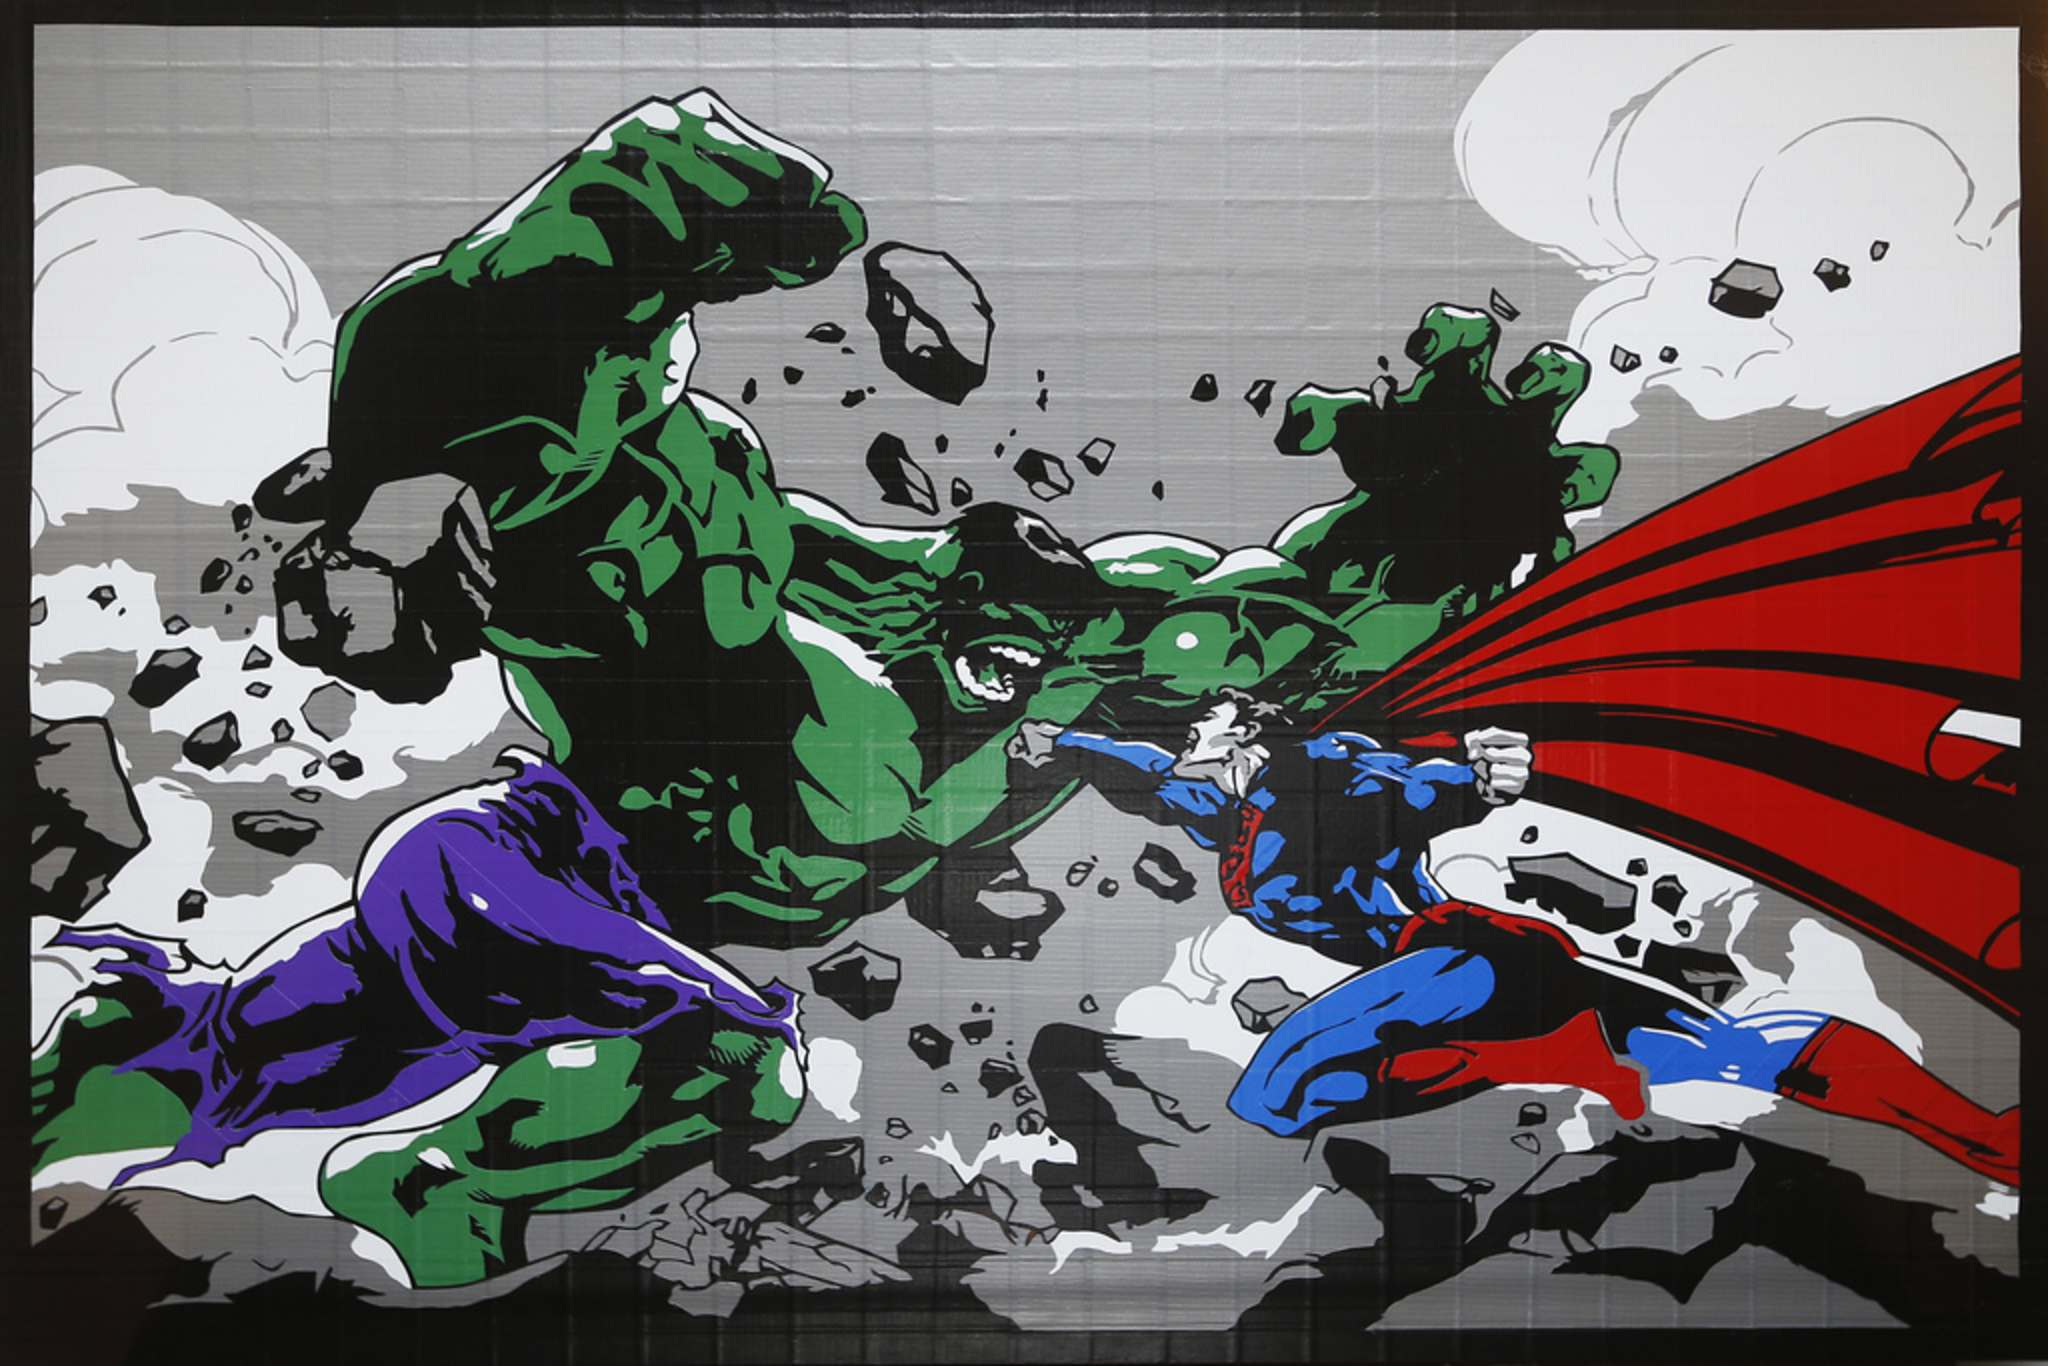 It took more than 20 hours to complete Superman duking it out with the Hulk.